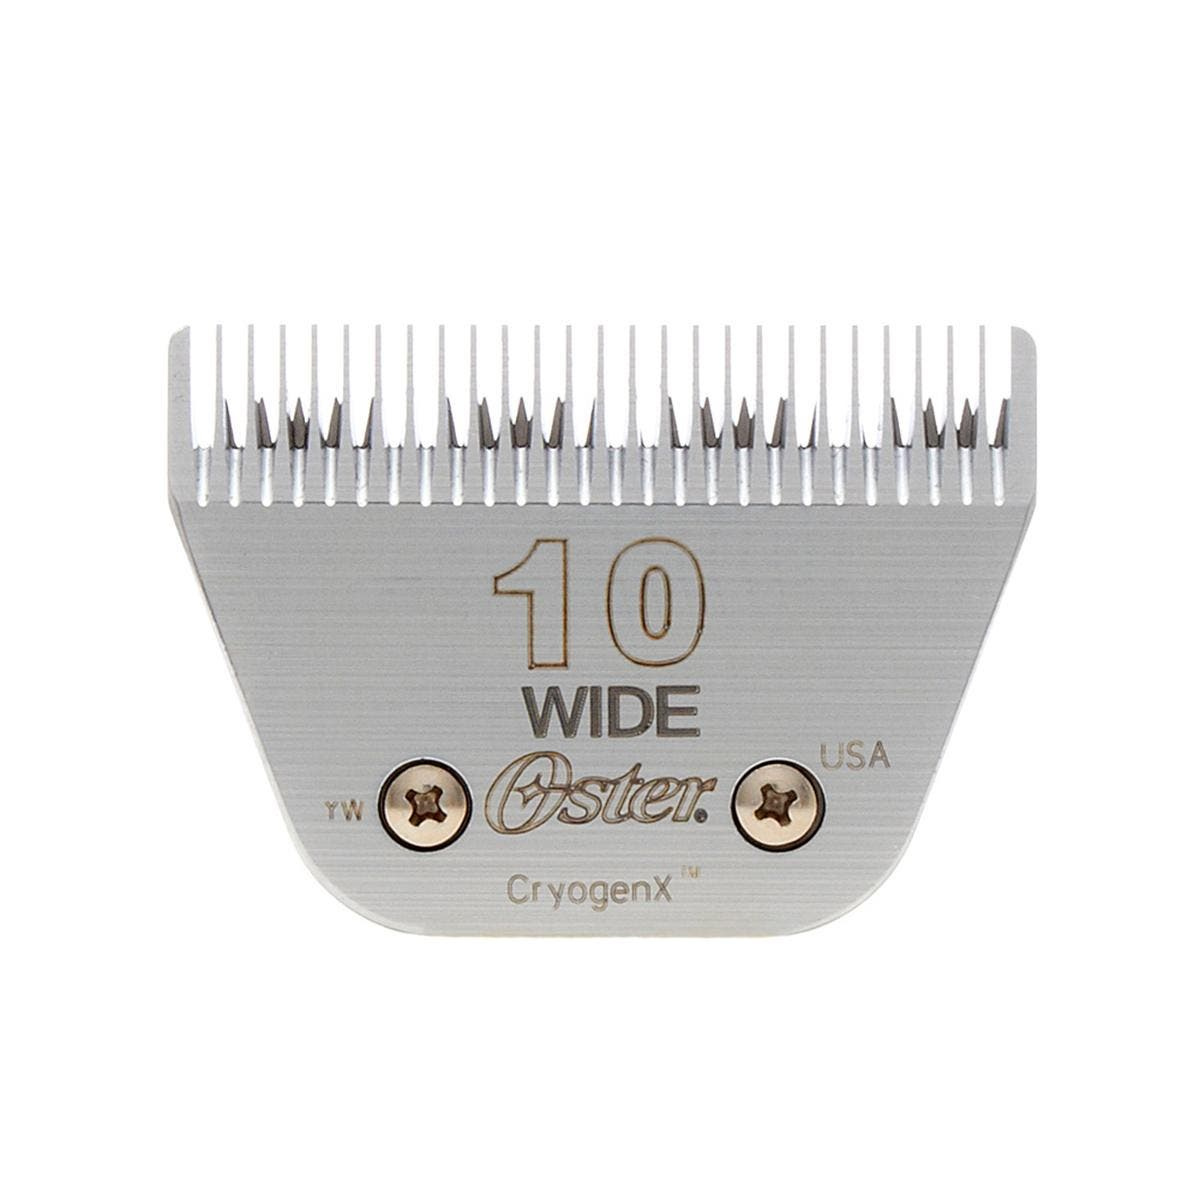 Oster Cryogenize 10 Wide Blade